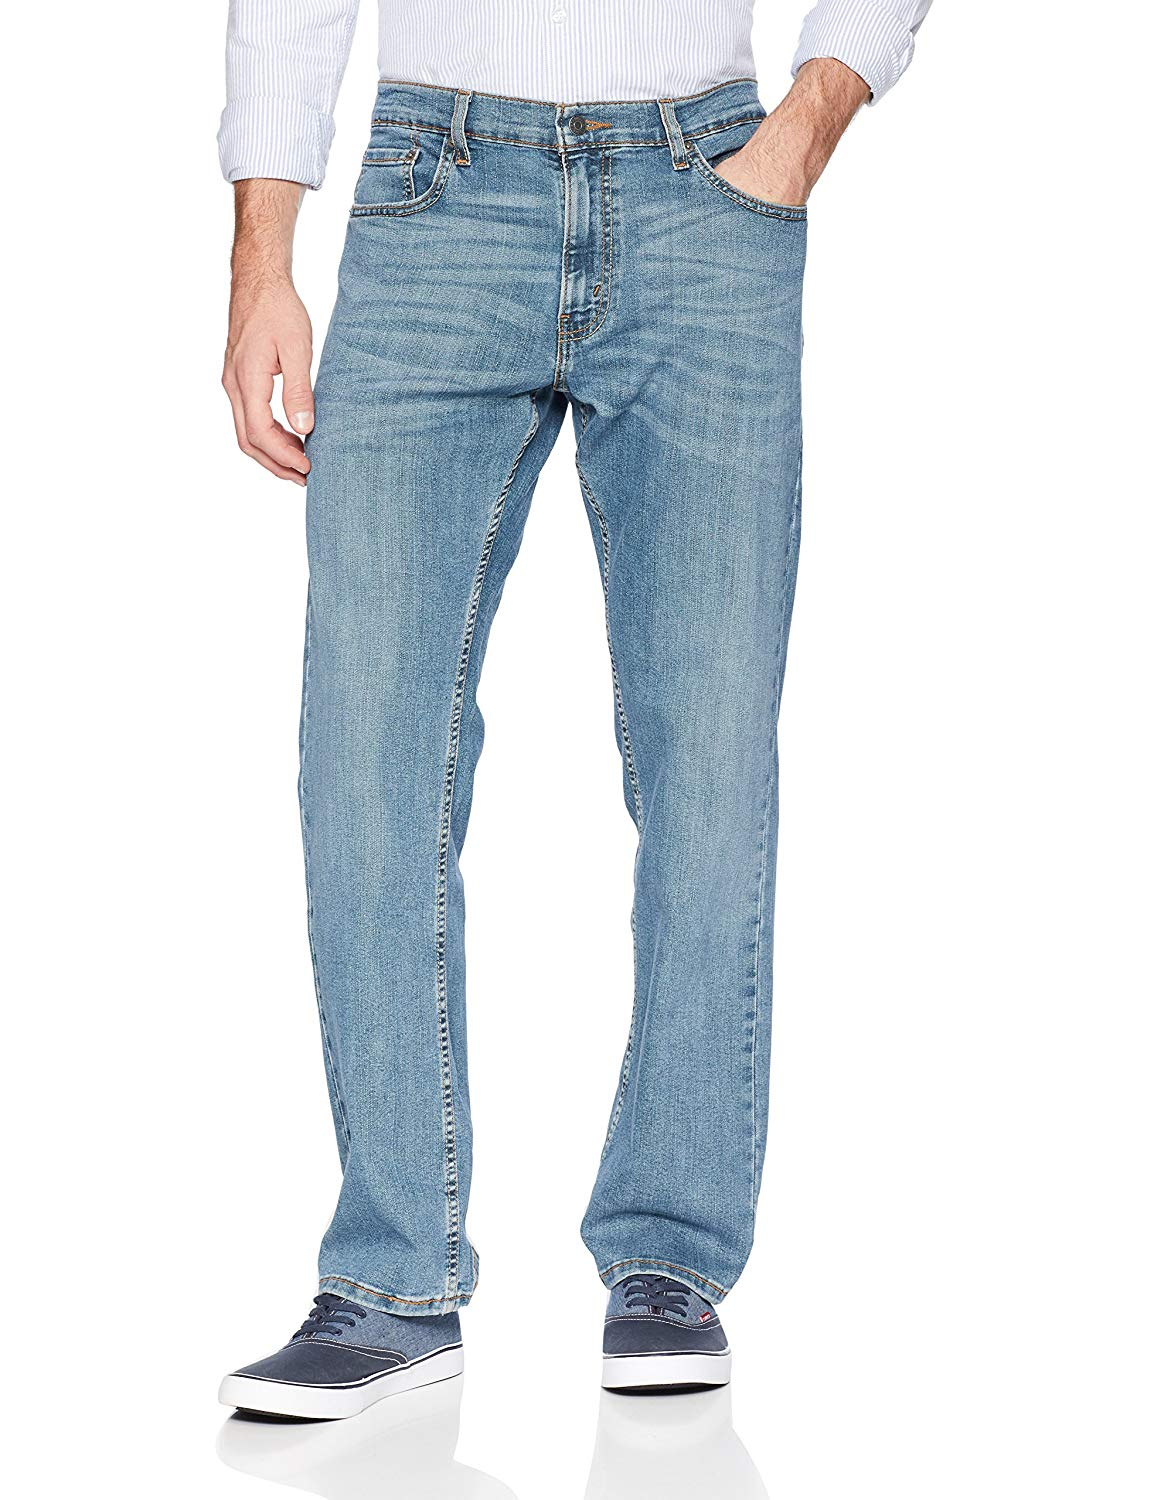 Signature-By-Levi-Strauss-amp-Co-Gold-Label-Titan-Blue-Men-Relaxed-Fit-Jeans